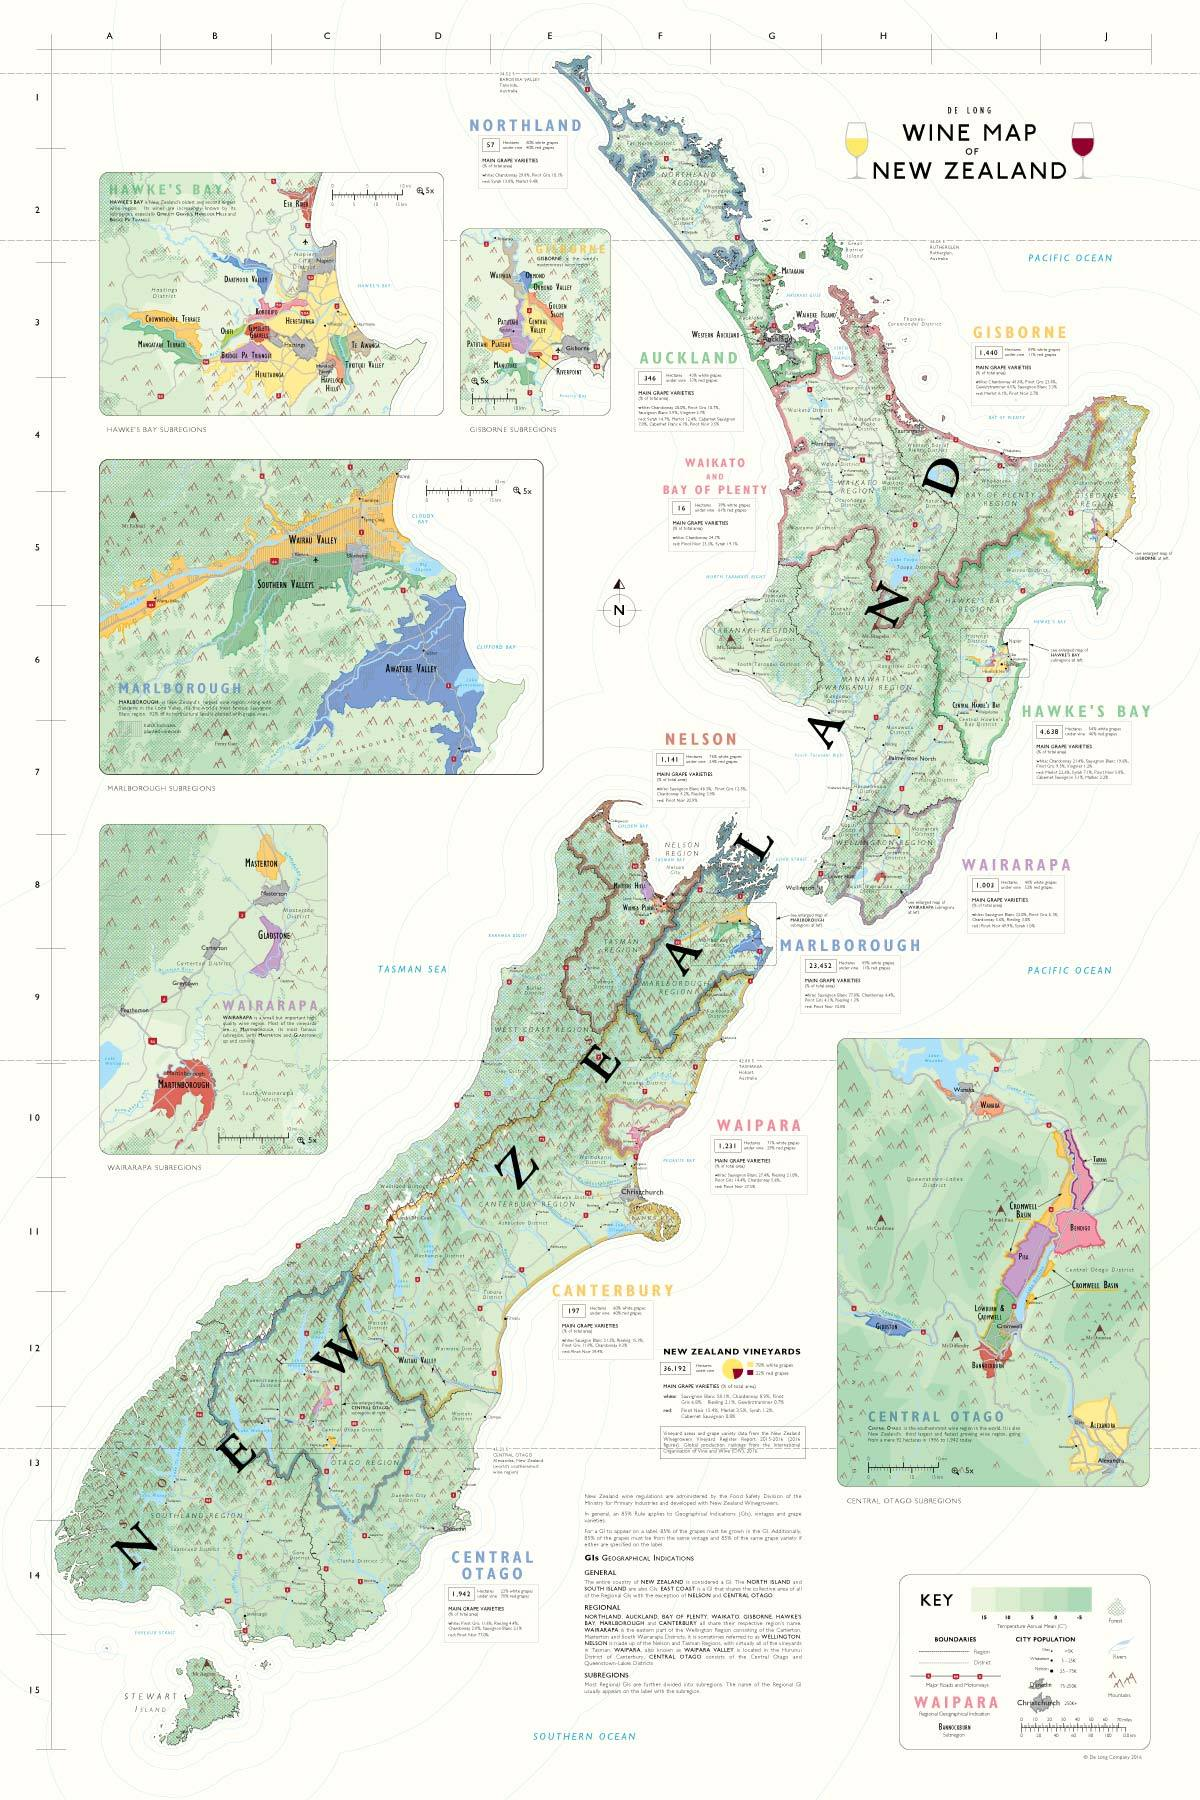 New Zealand Map Of The World.Wine Maps Of The World De Long